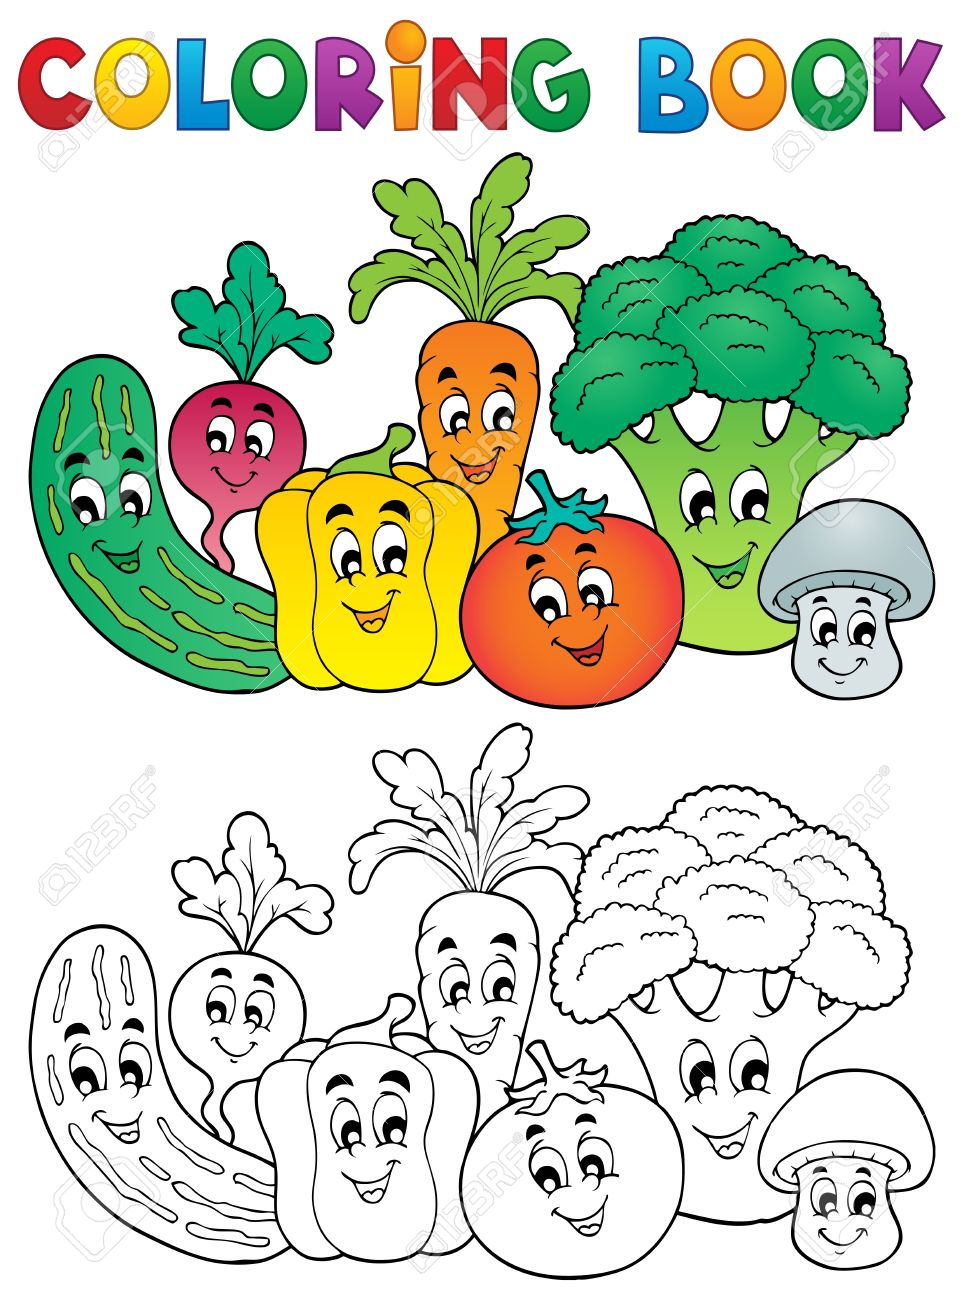 Coloring book pictures of vegetables - Coloring Book Coloring Book Vegetables Theme Illustration